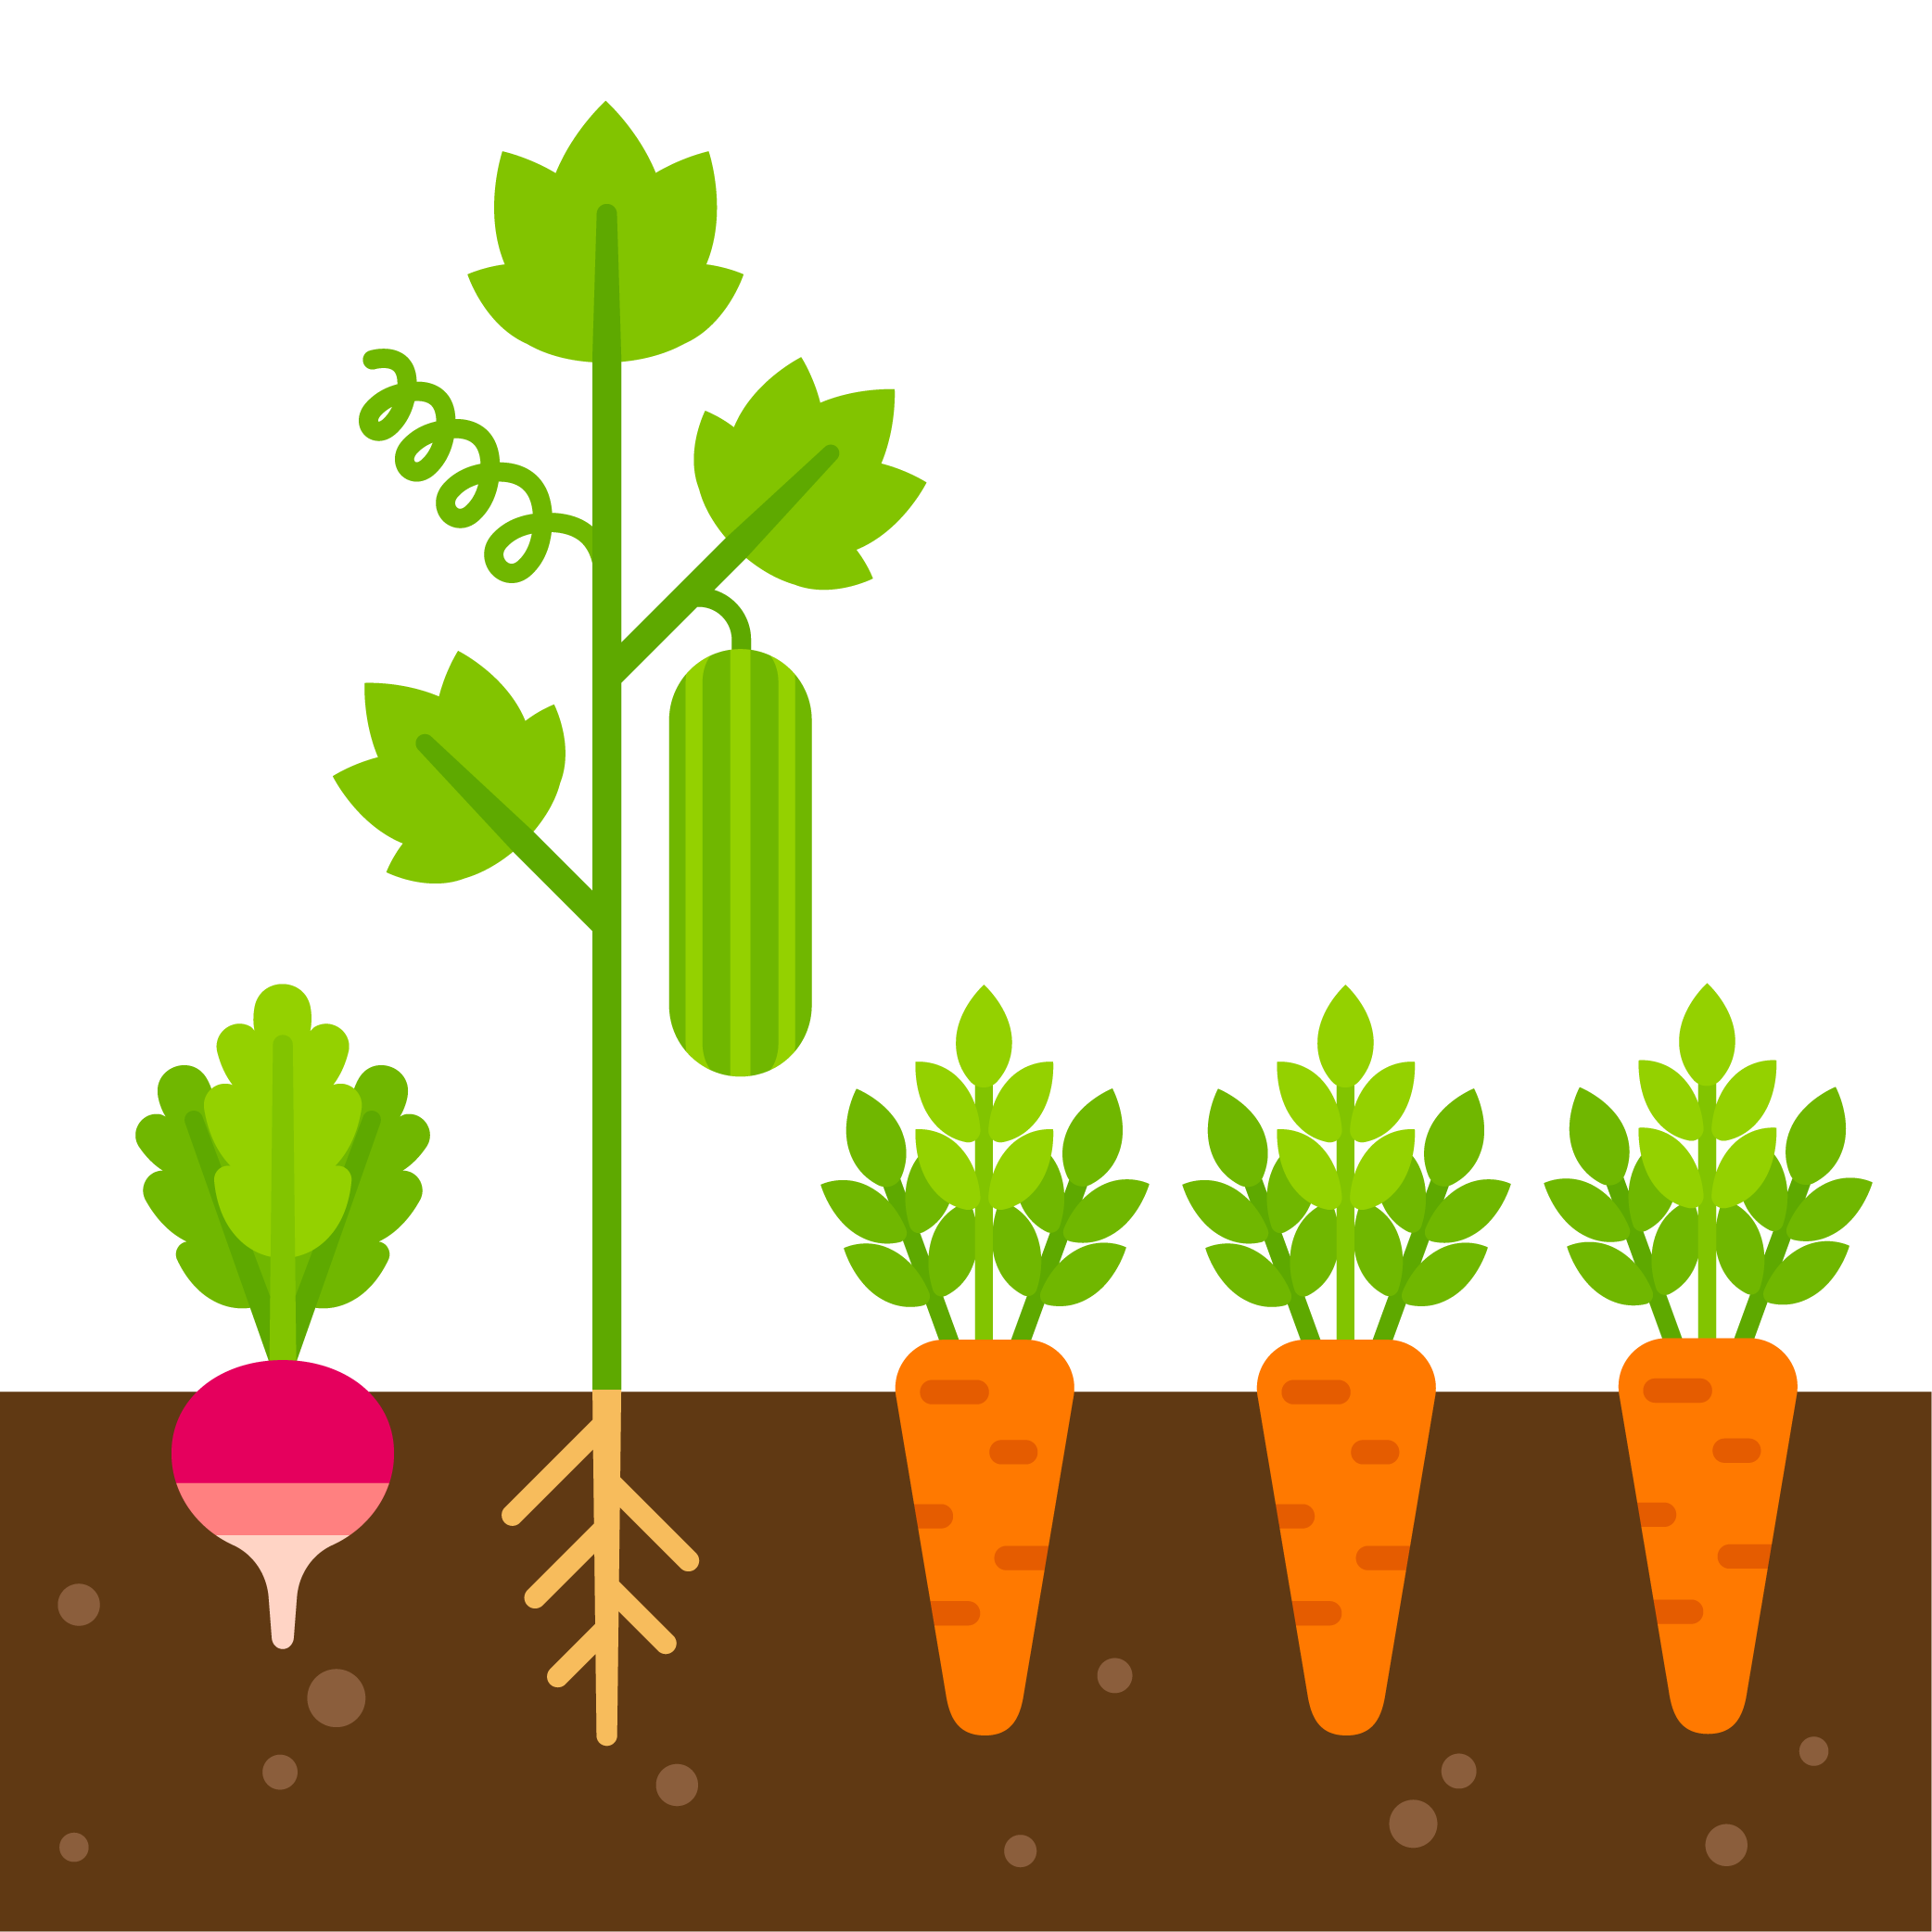 Roots clipart plant nutrient. Gardening basics healthy soil